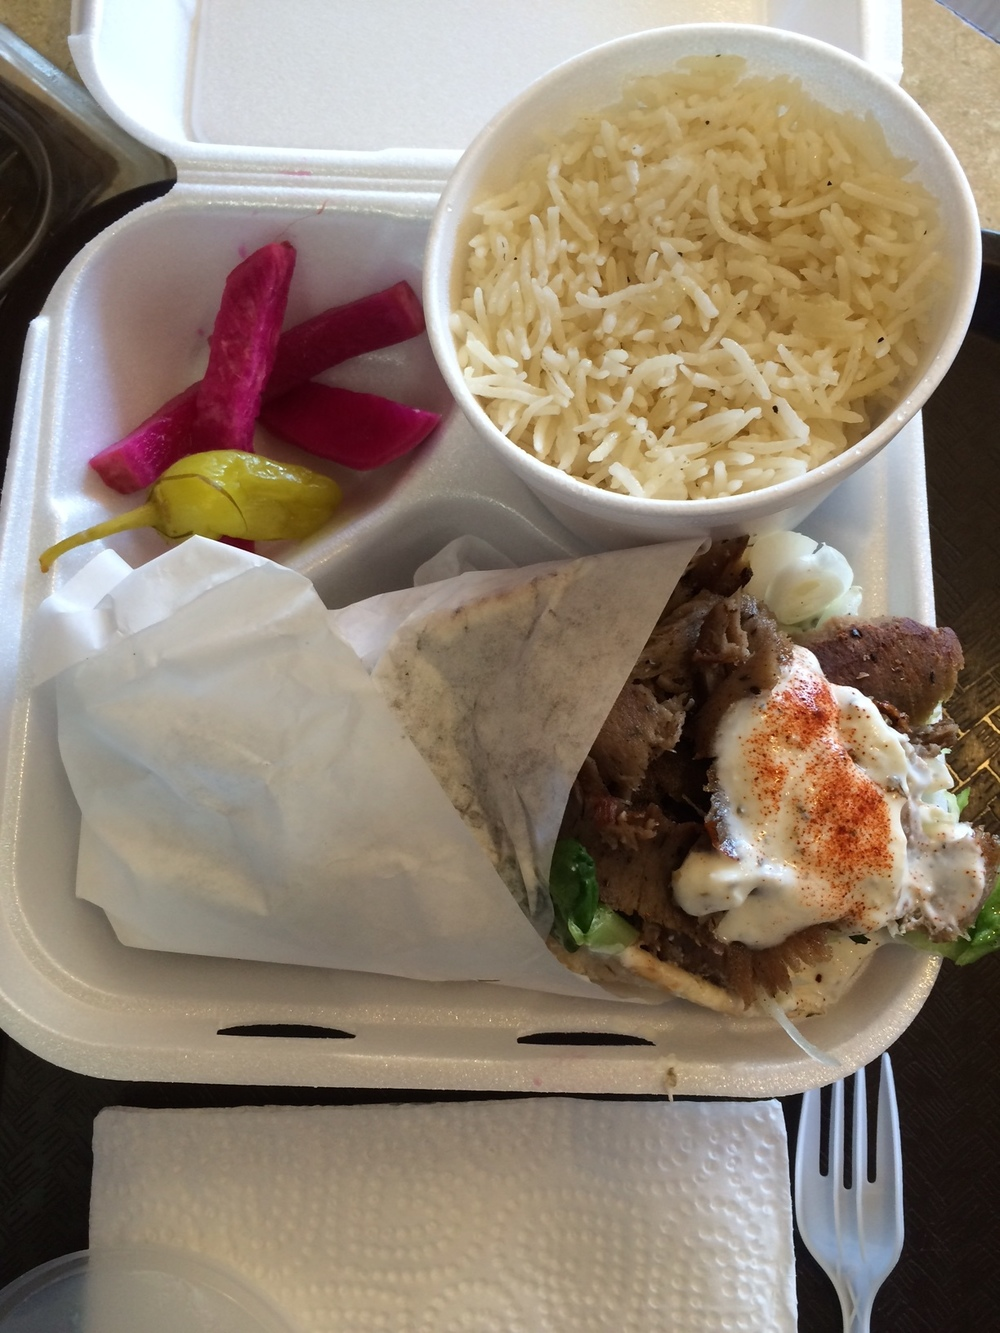 Tender shawerma, rice pilaf and pickled vegetables for $6.27. Photo by Dan Johnson.